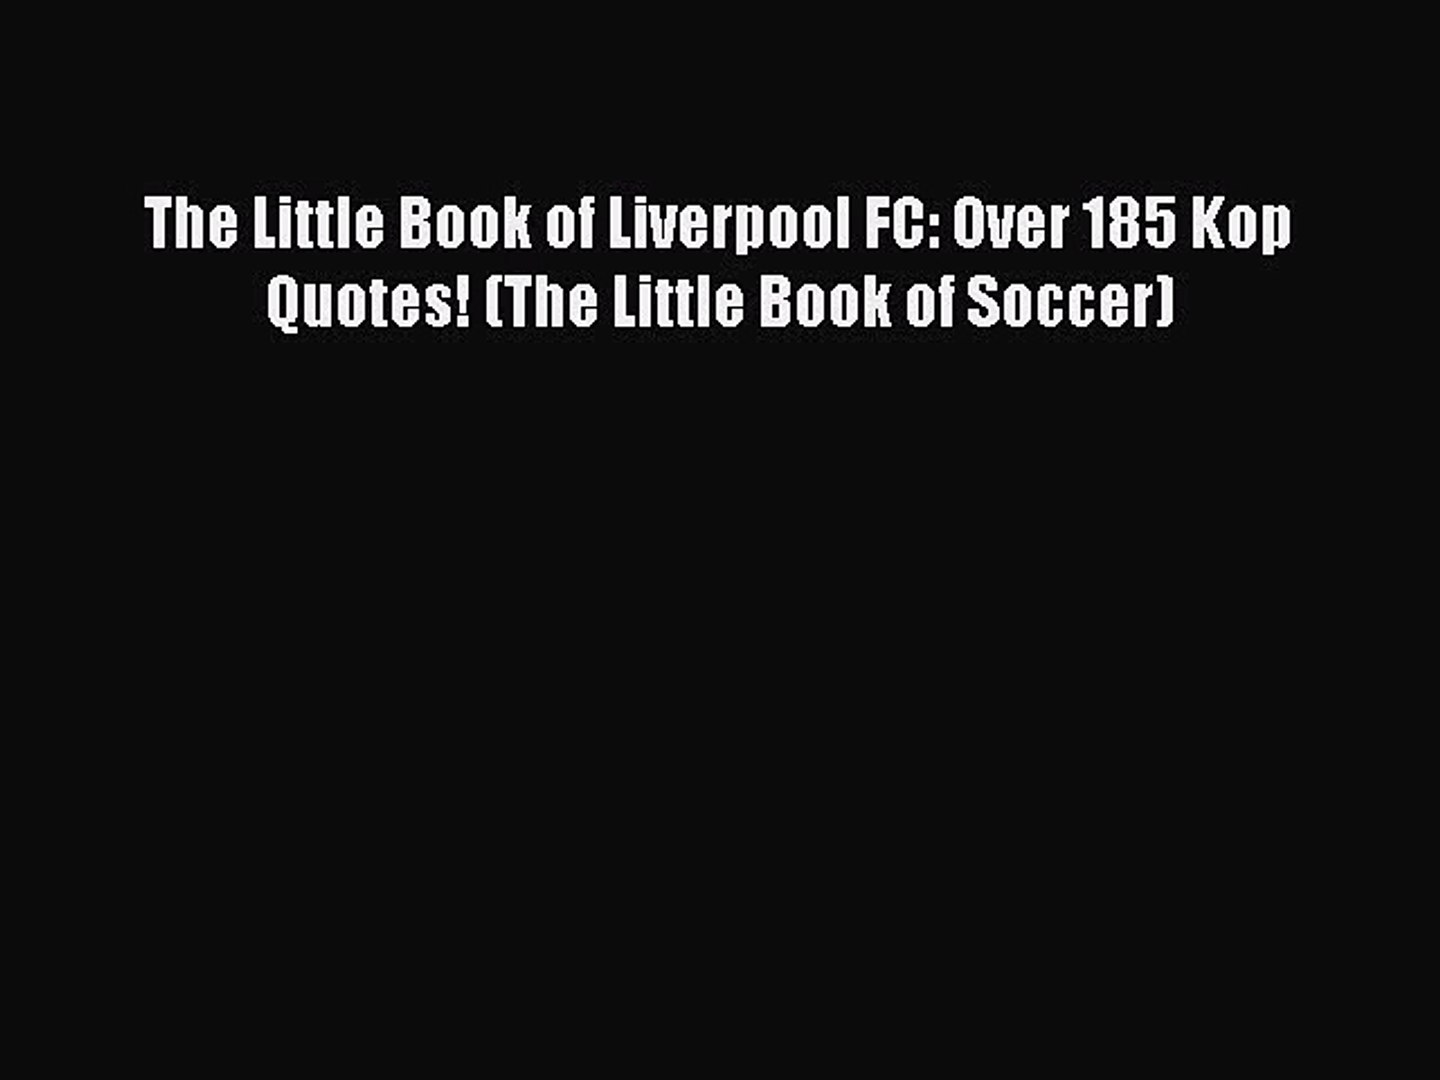 Download The Little Book of Liverpool FC: Over 185 Kop Quotes! (The Little Book of Soccer)